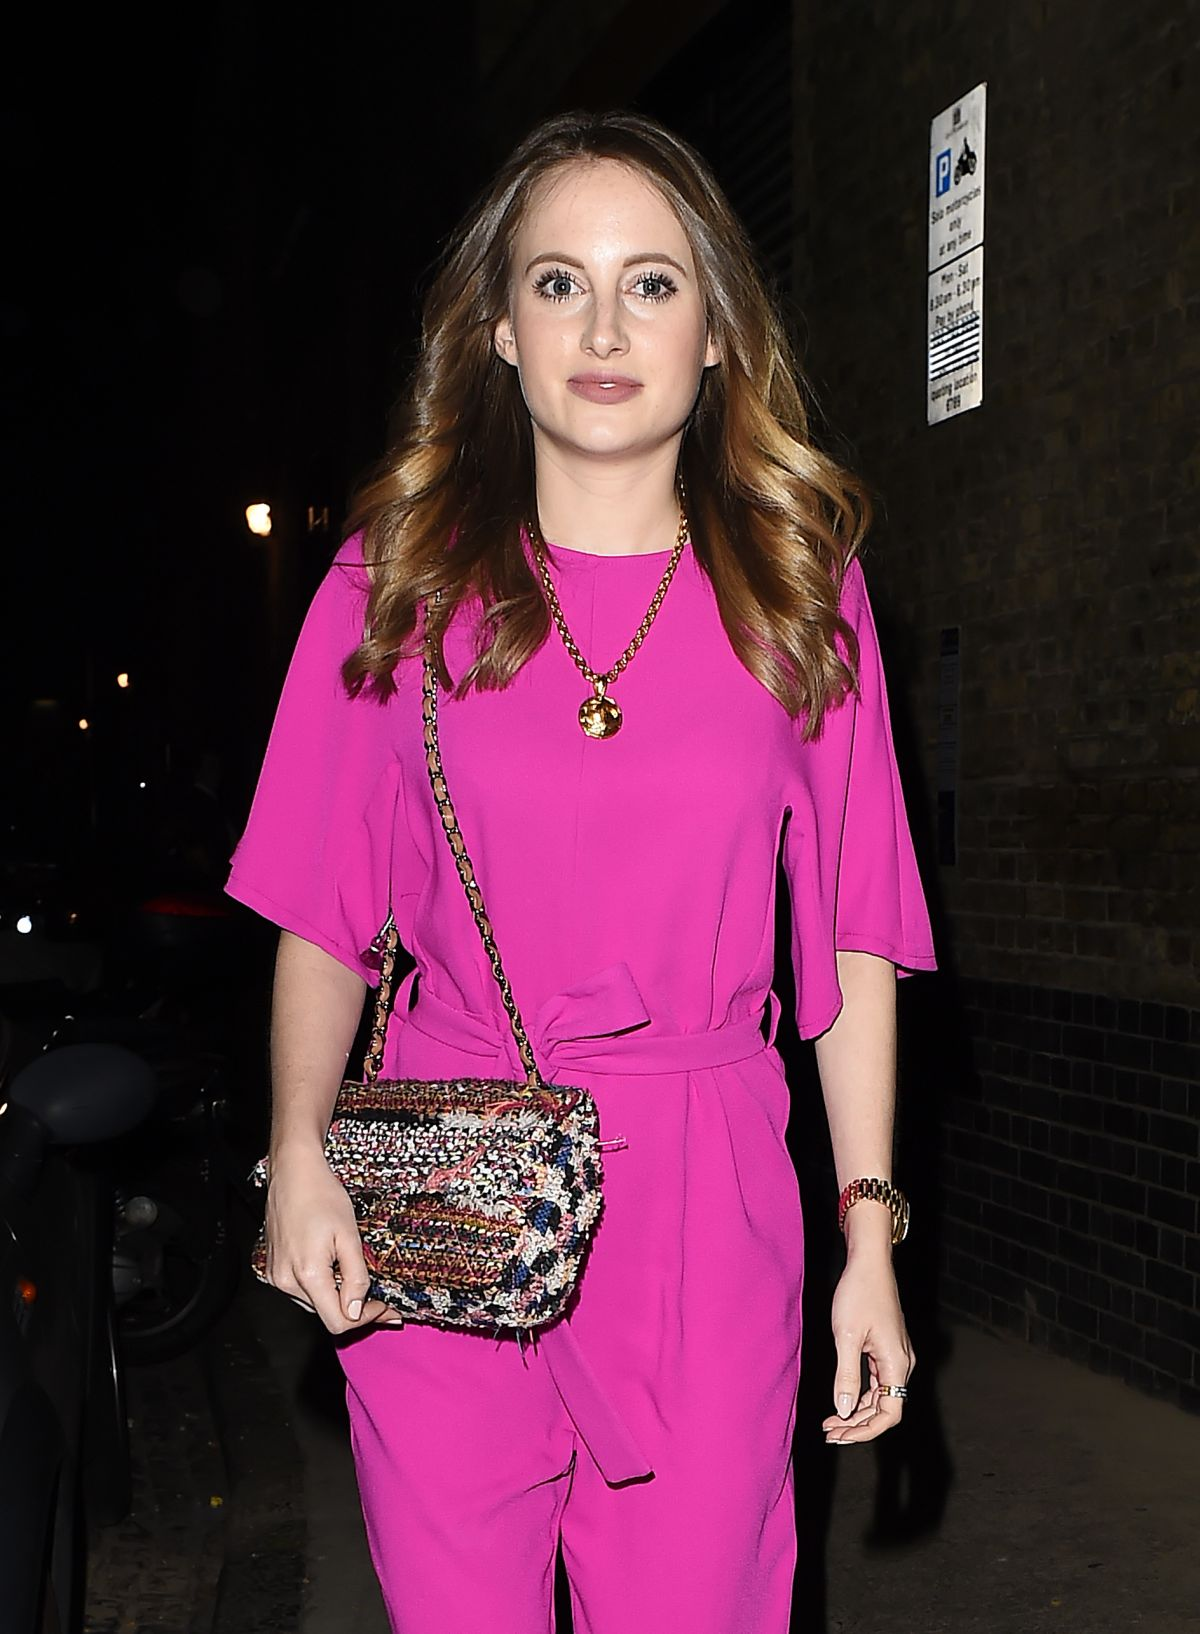 ROSIE FORTESCUE Arrives at Chiltern Firehouse in London 07/31/2015